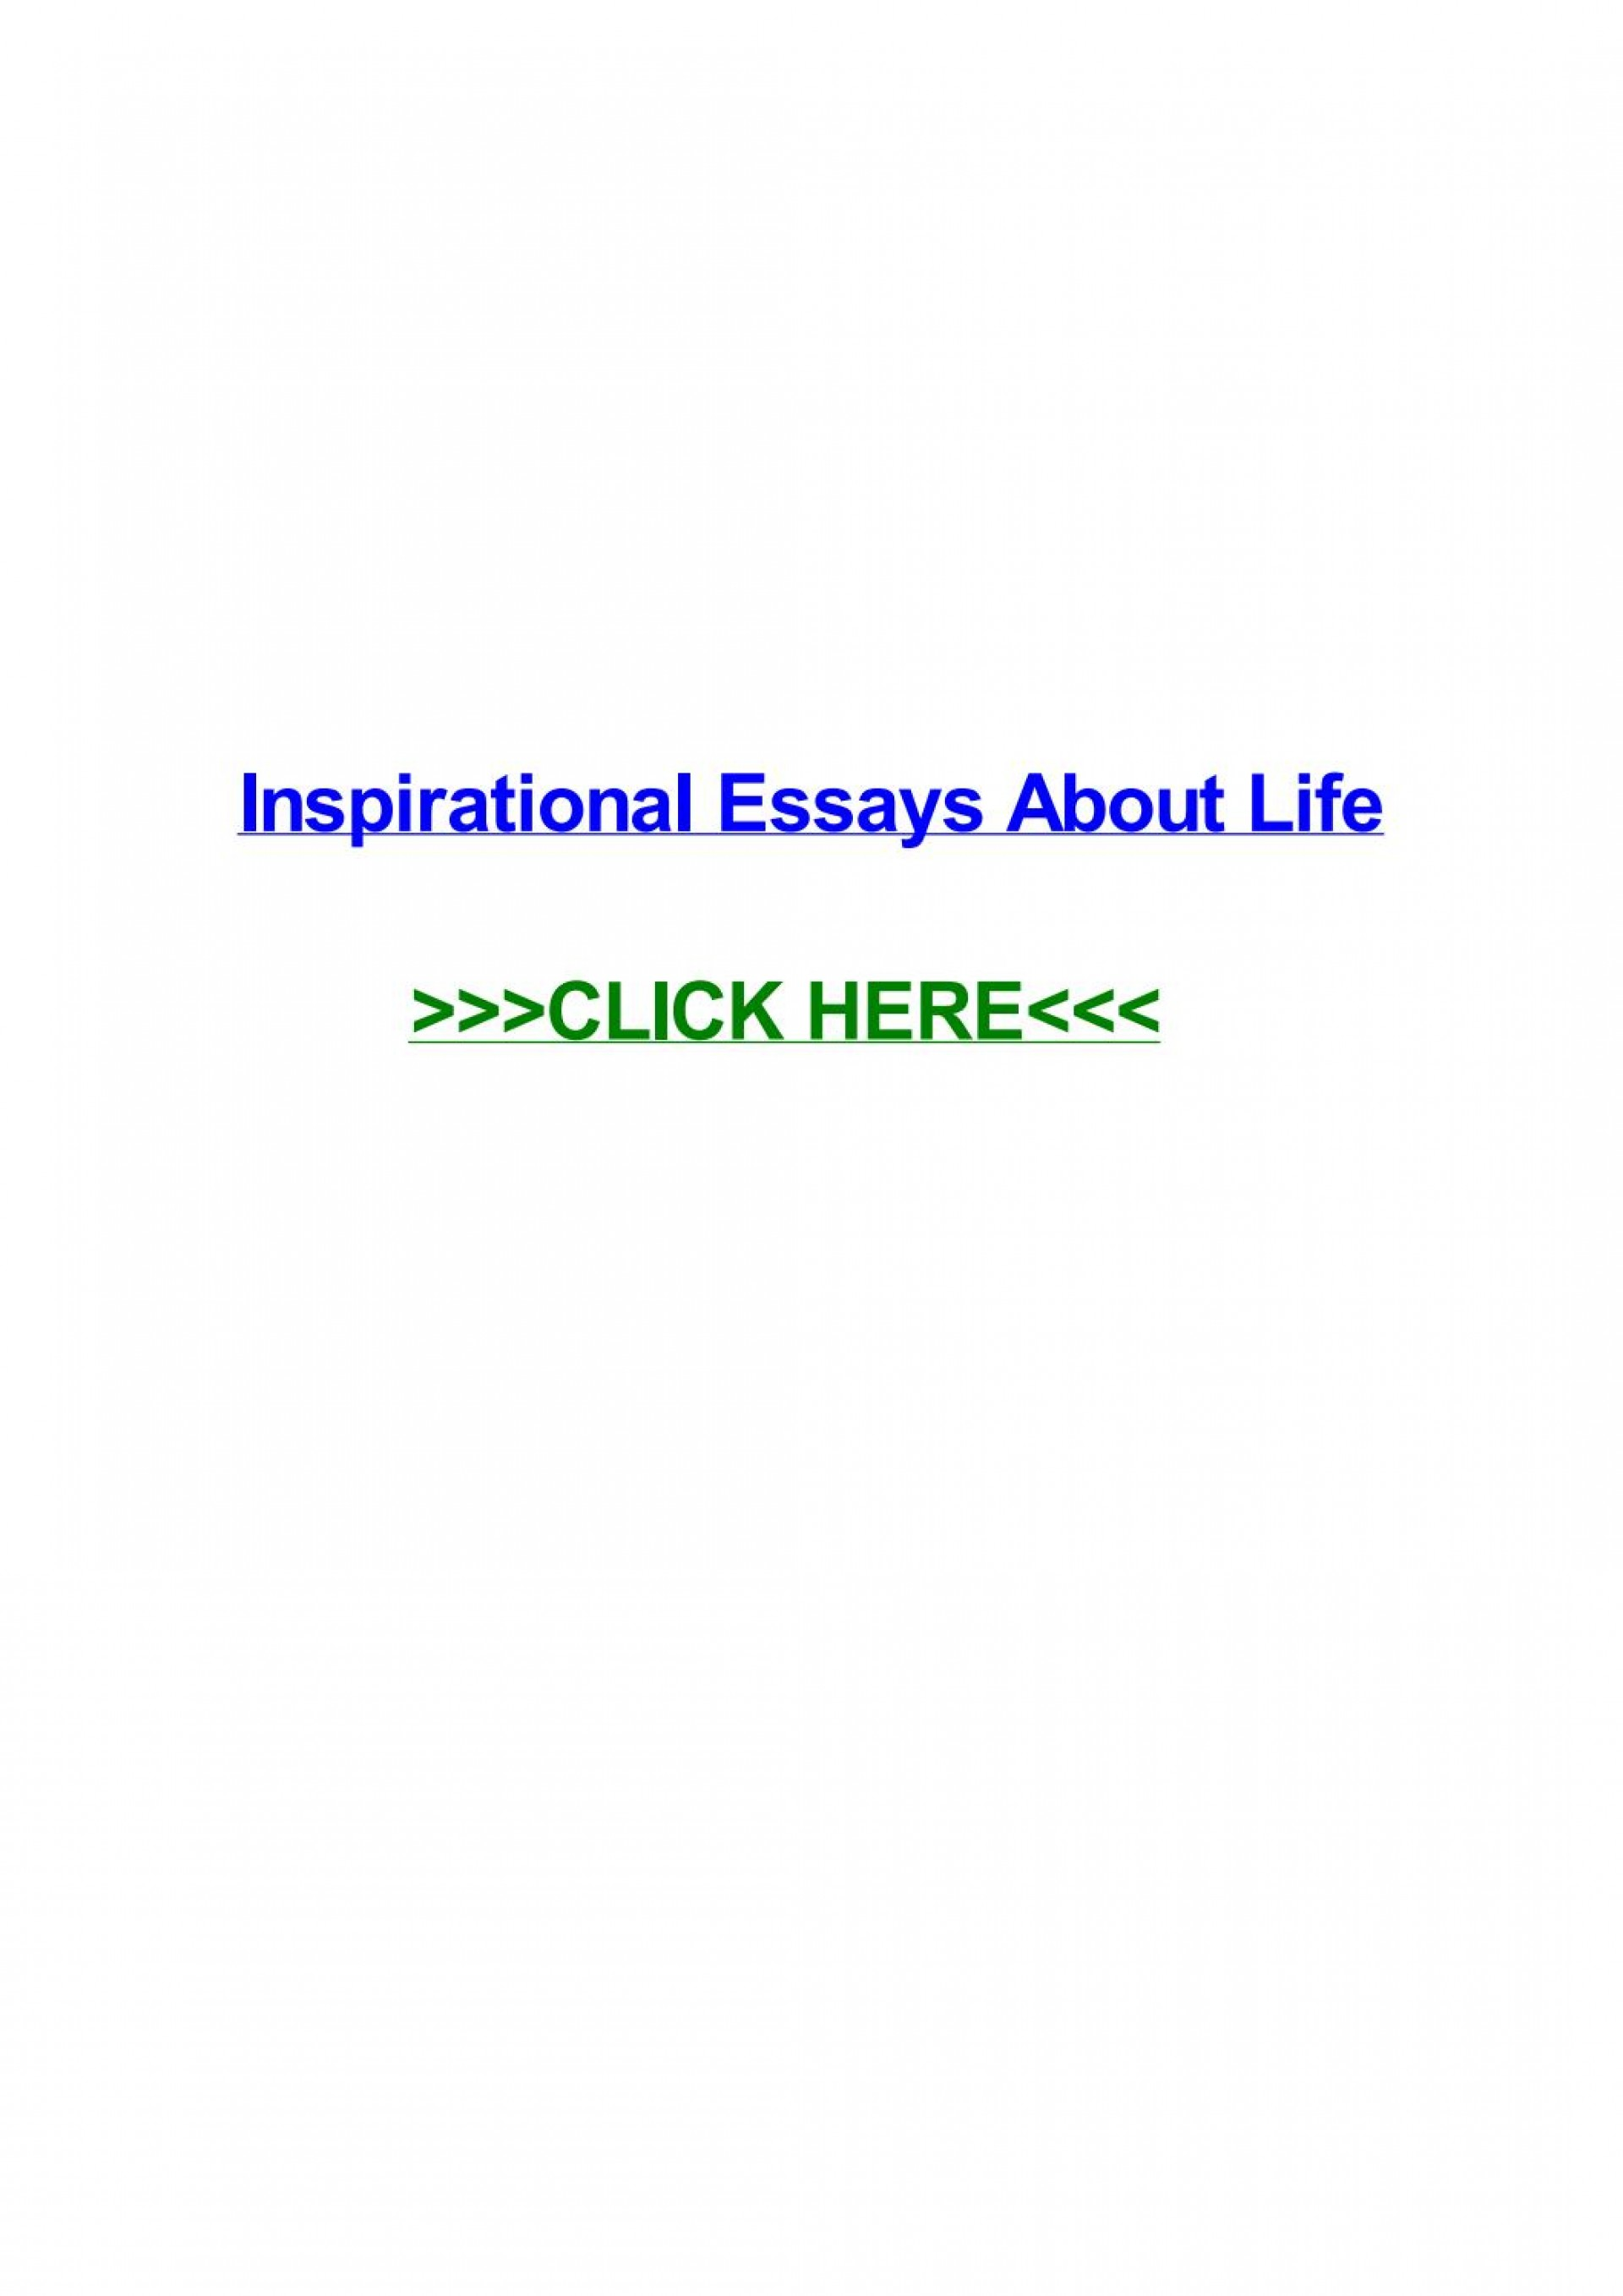 007 Essay Example Page 1 Inspirational Breathtaking Essays In Hindi About Life And Struggles Fathers 1920